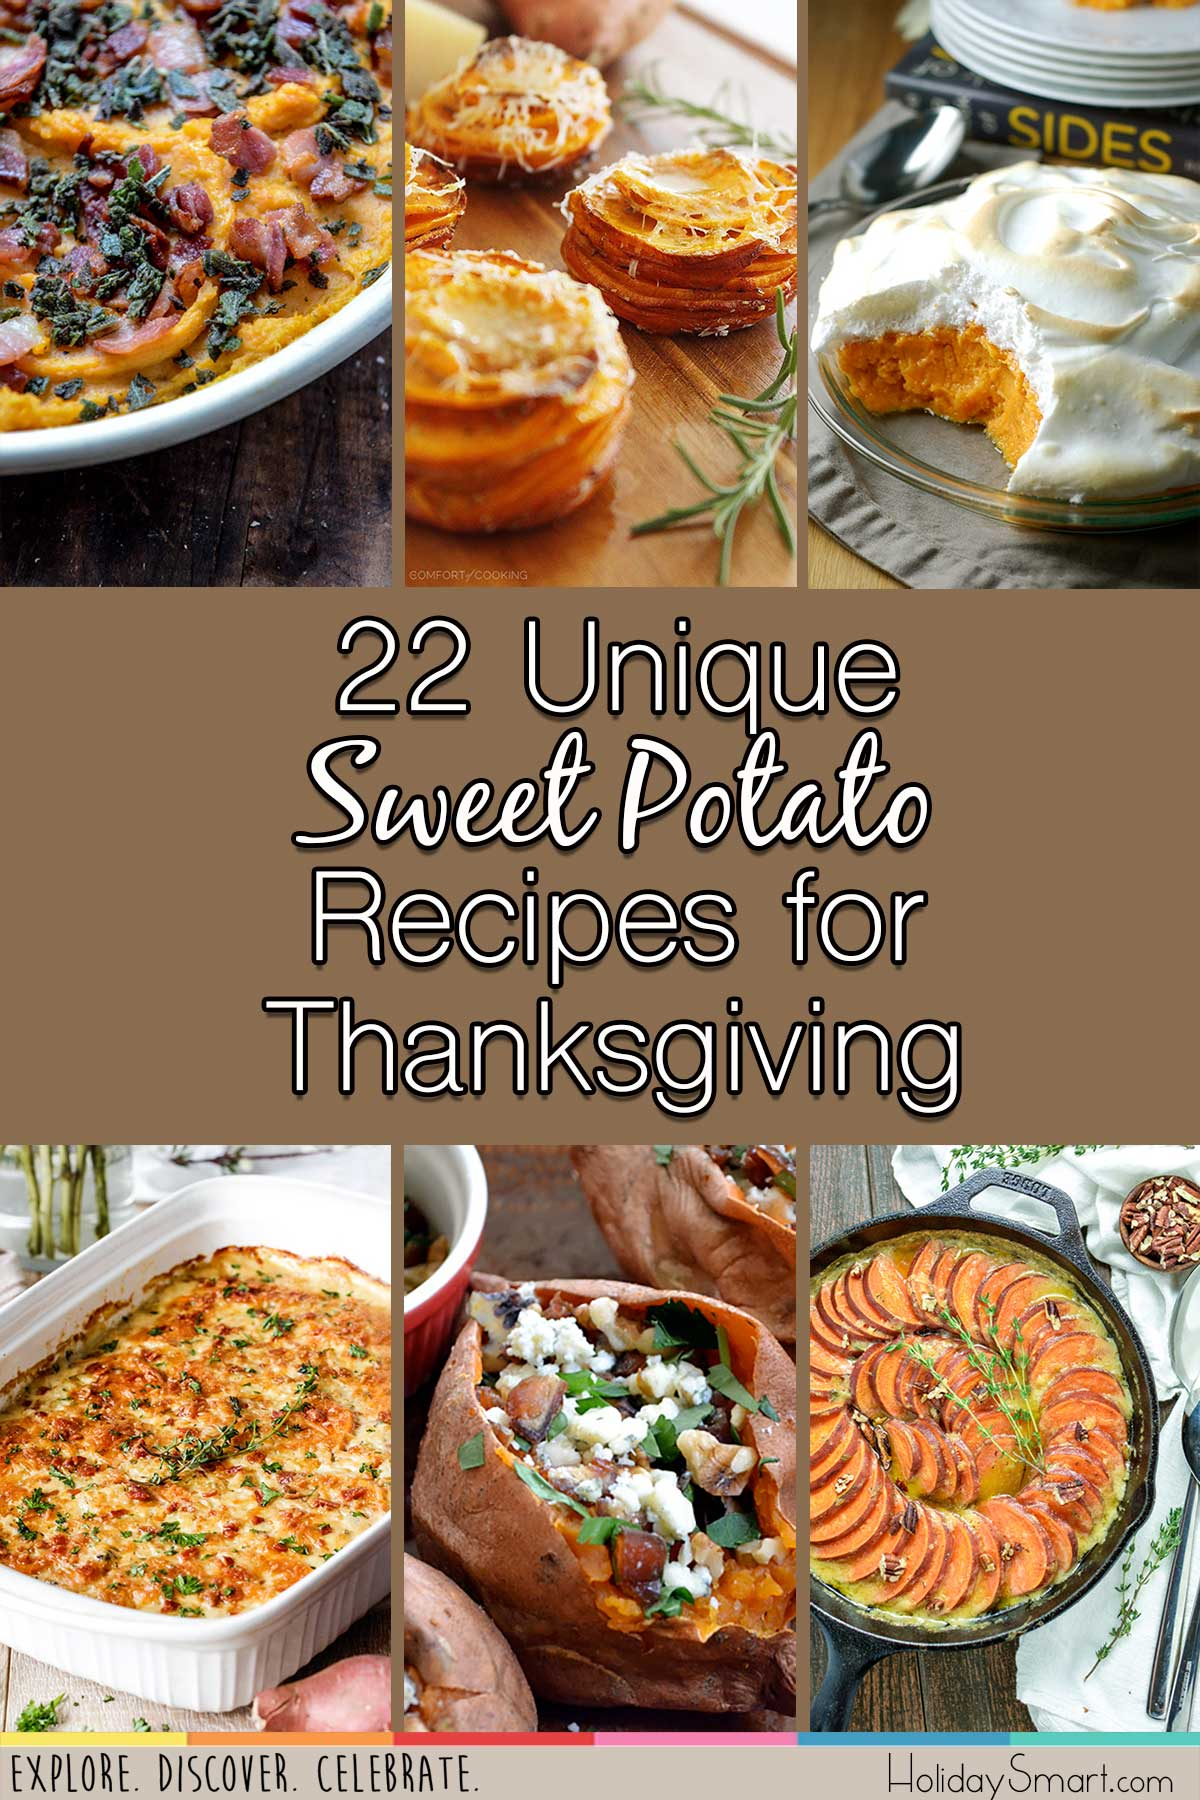 22 Unique Sweet Potato Recipes for Thanksgiving